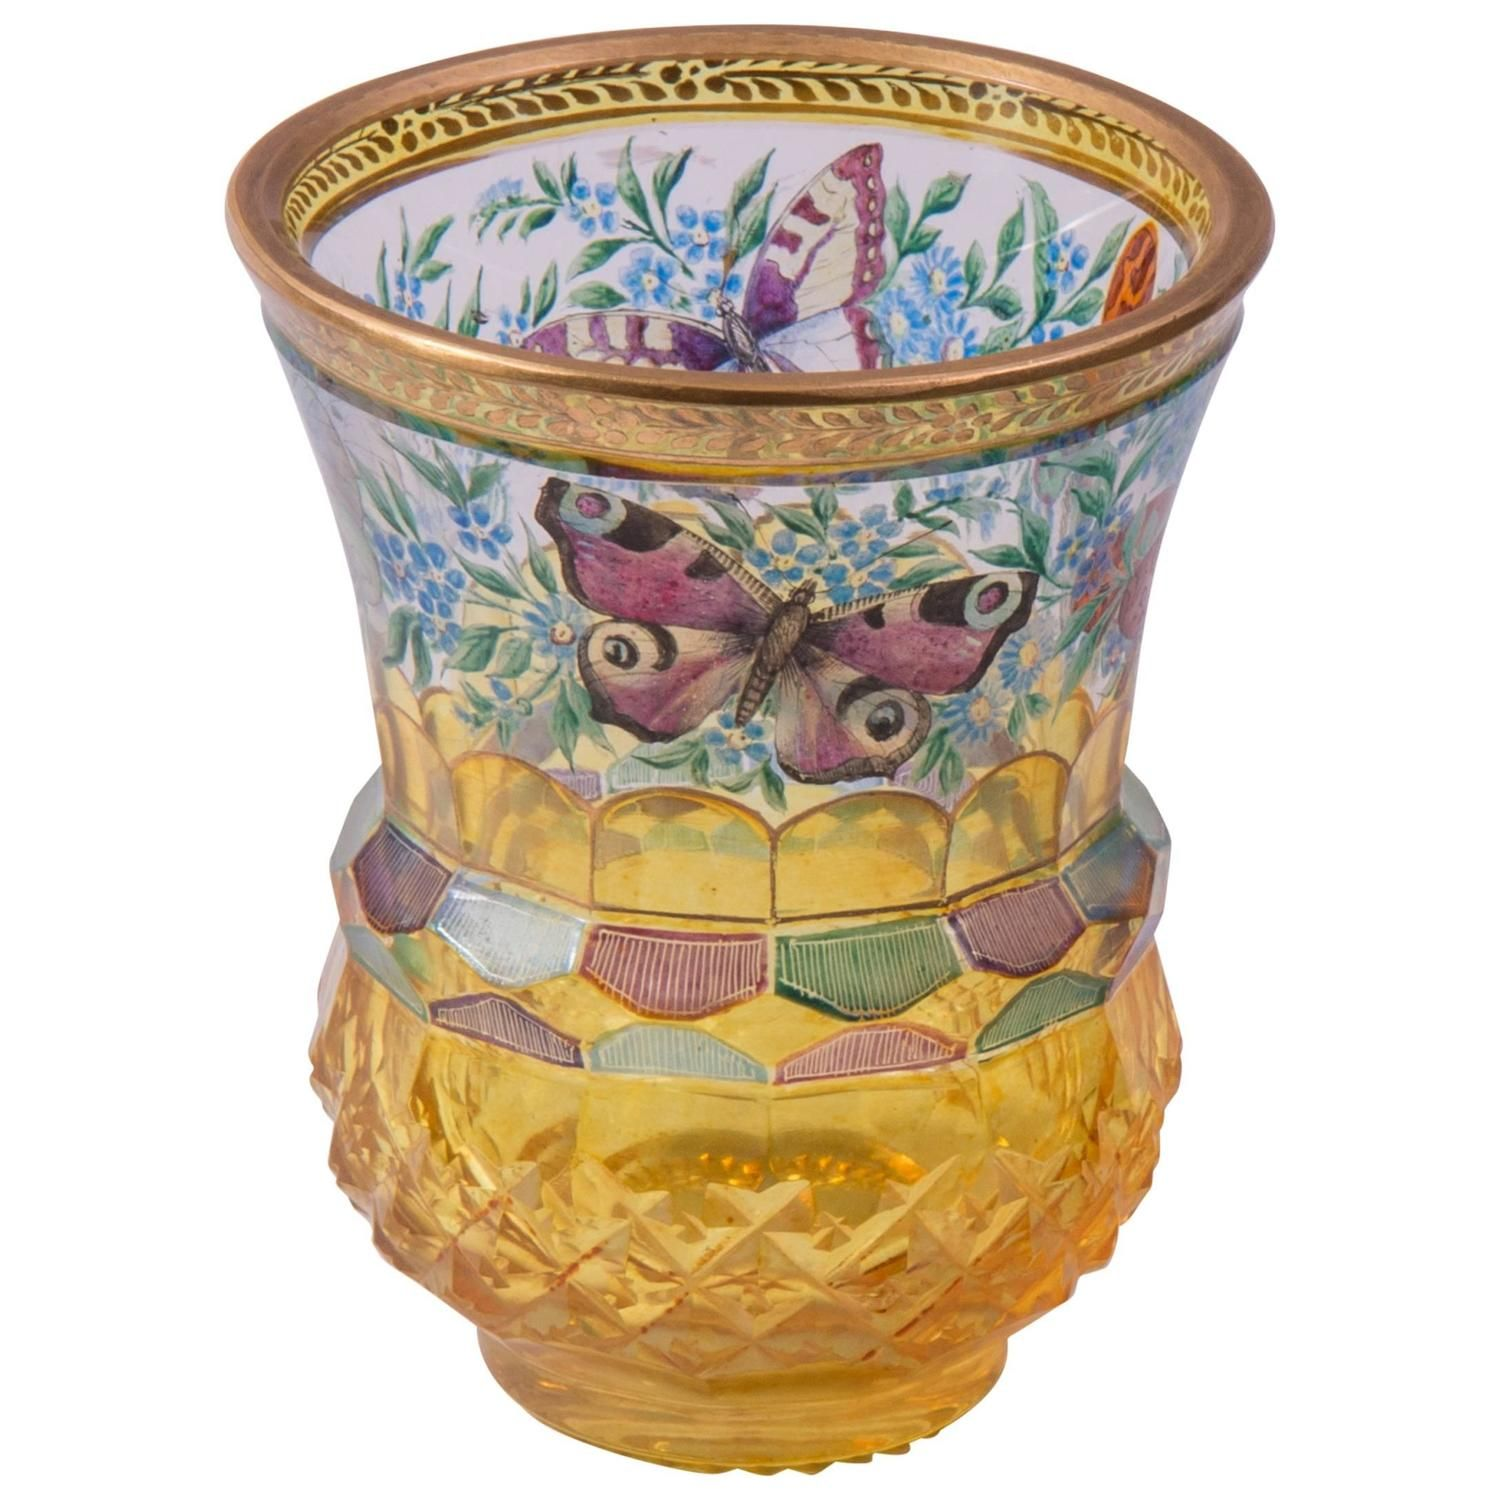 Glass Beaker with Butterflies, North Bohemia, circa 1830-1840 | From a unique collection of antique and modern glass at https://www.1stdibs.com/furniture/dining-entertaining/glass/